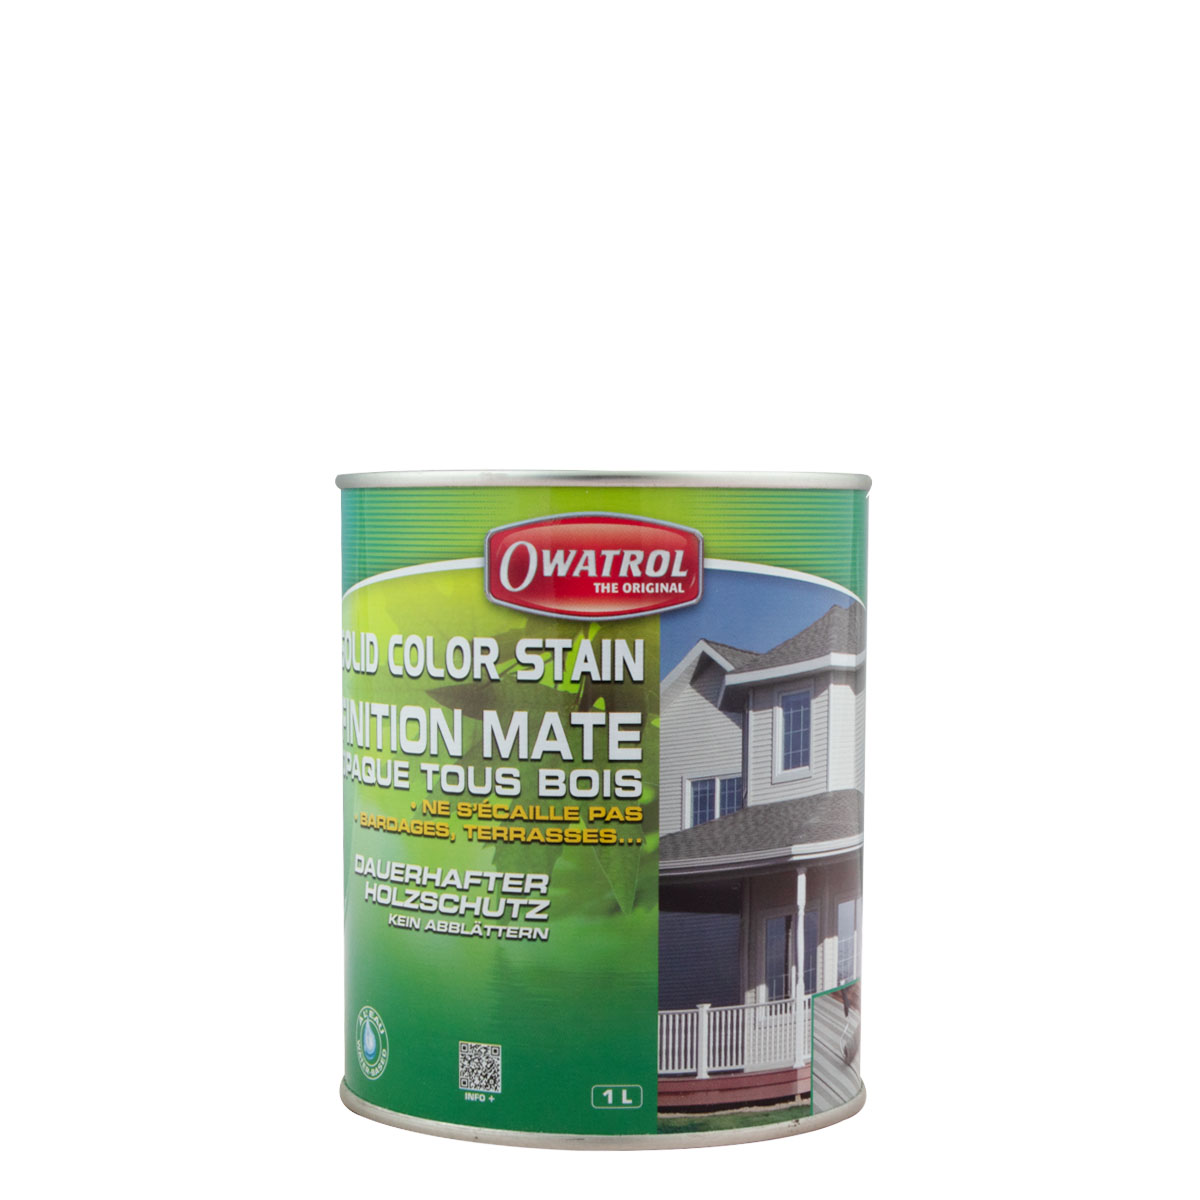 Owatrol Solid Color Stain Deckweiss 1l